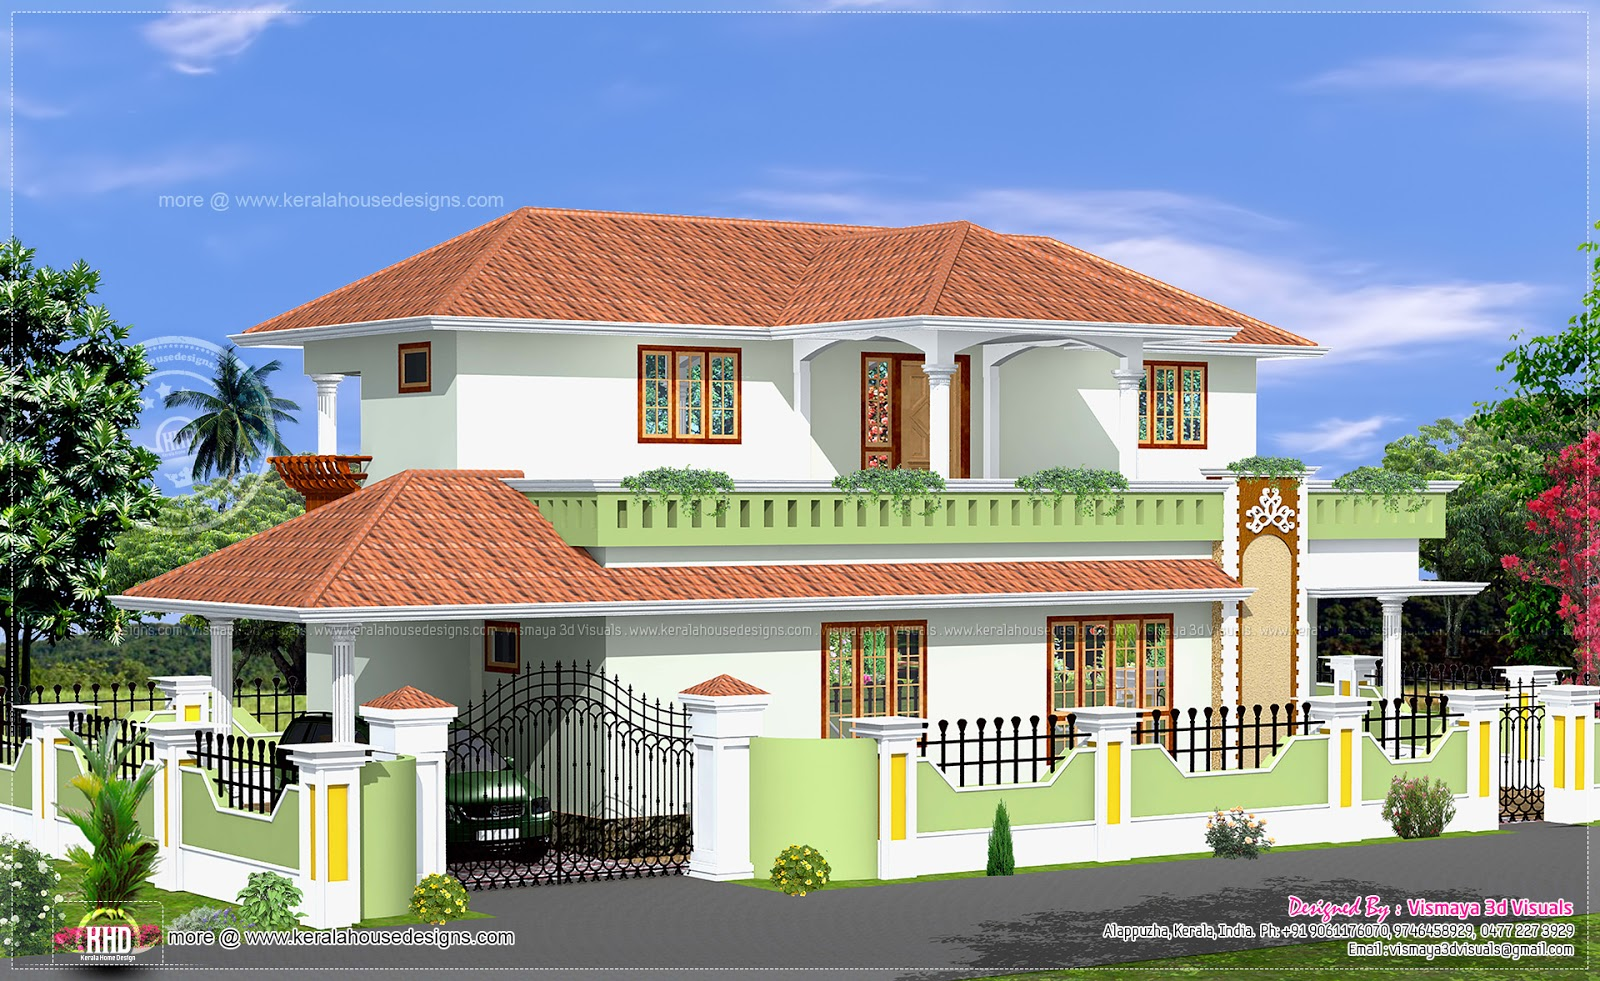 Simple house designs kerala style home design and style for Home style